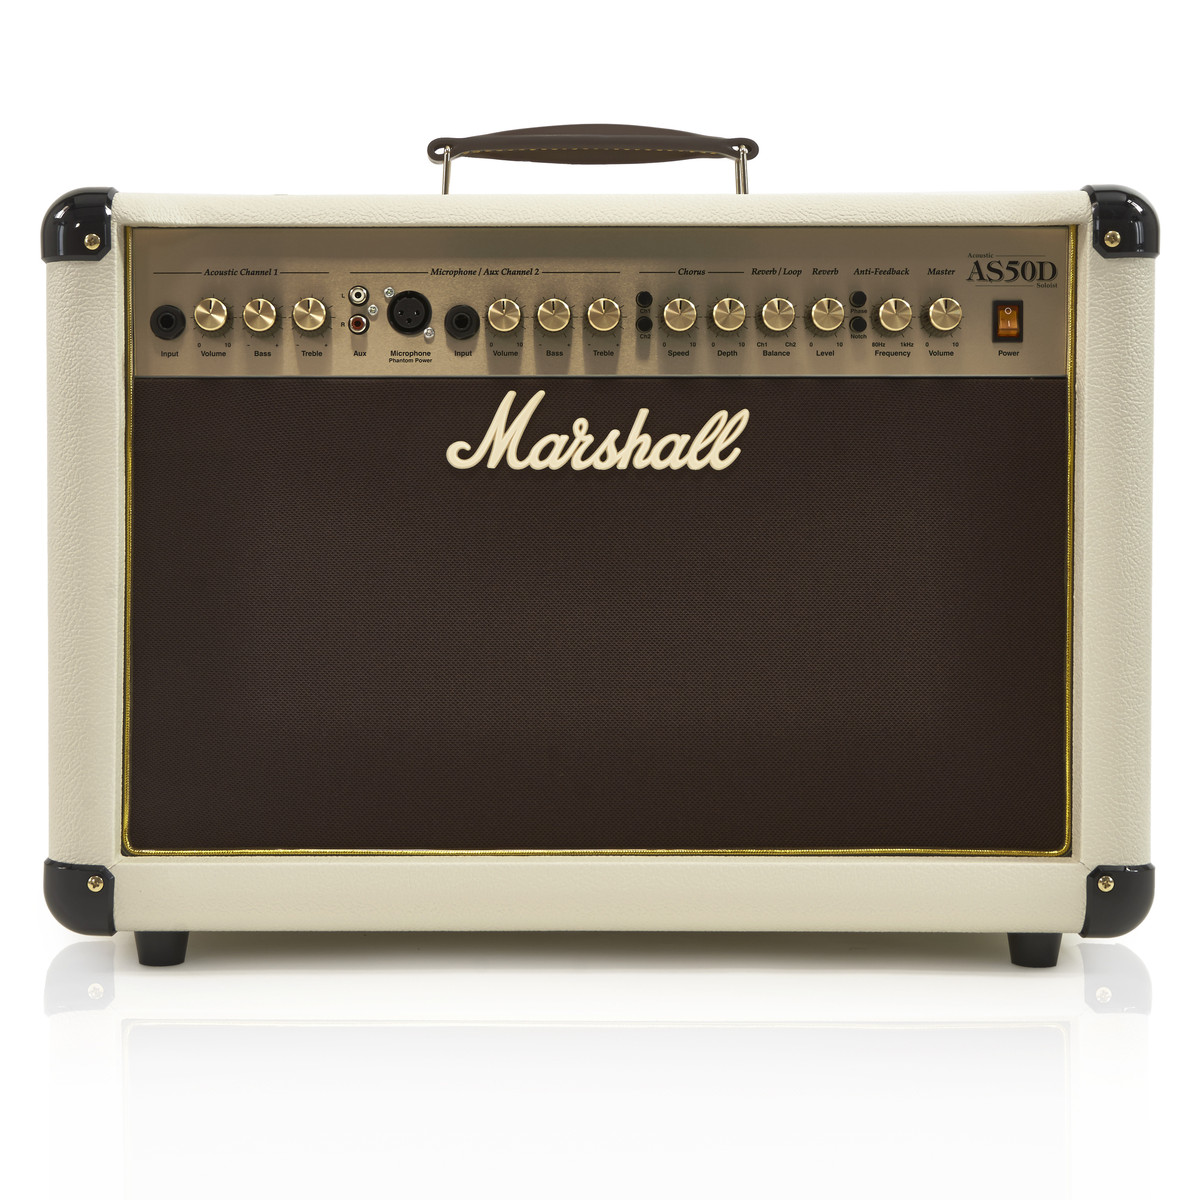 marshall as50dc acoustic combo amp limited edition cream box opened at gear4music. Black Bedroom Furniture Sets. Home Design Ideas